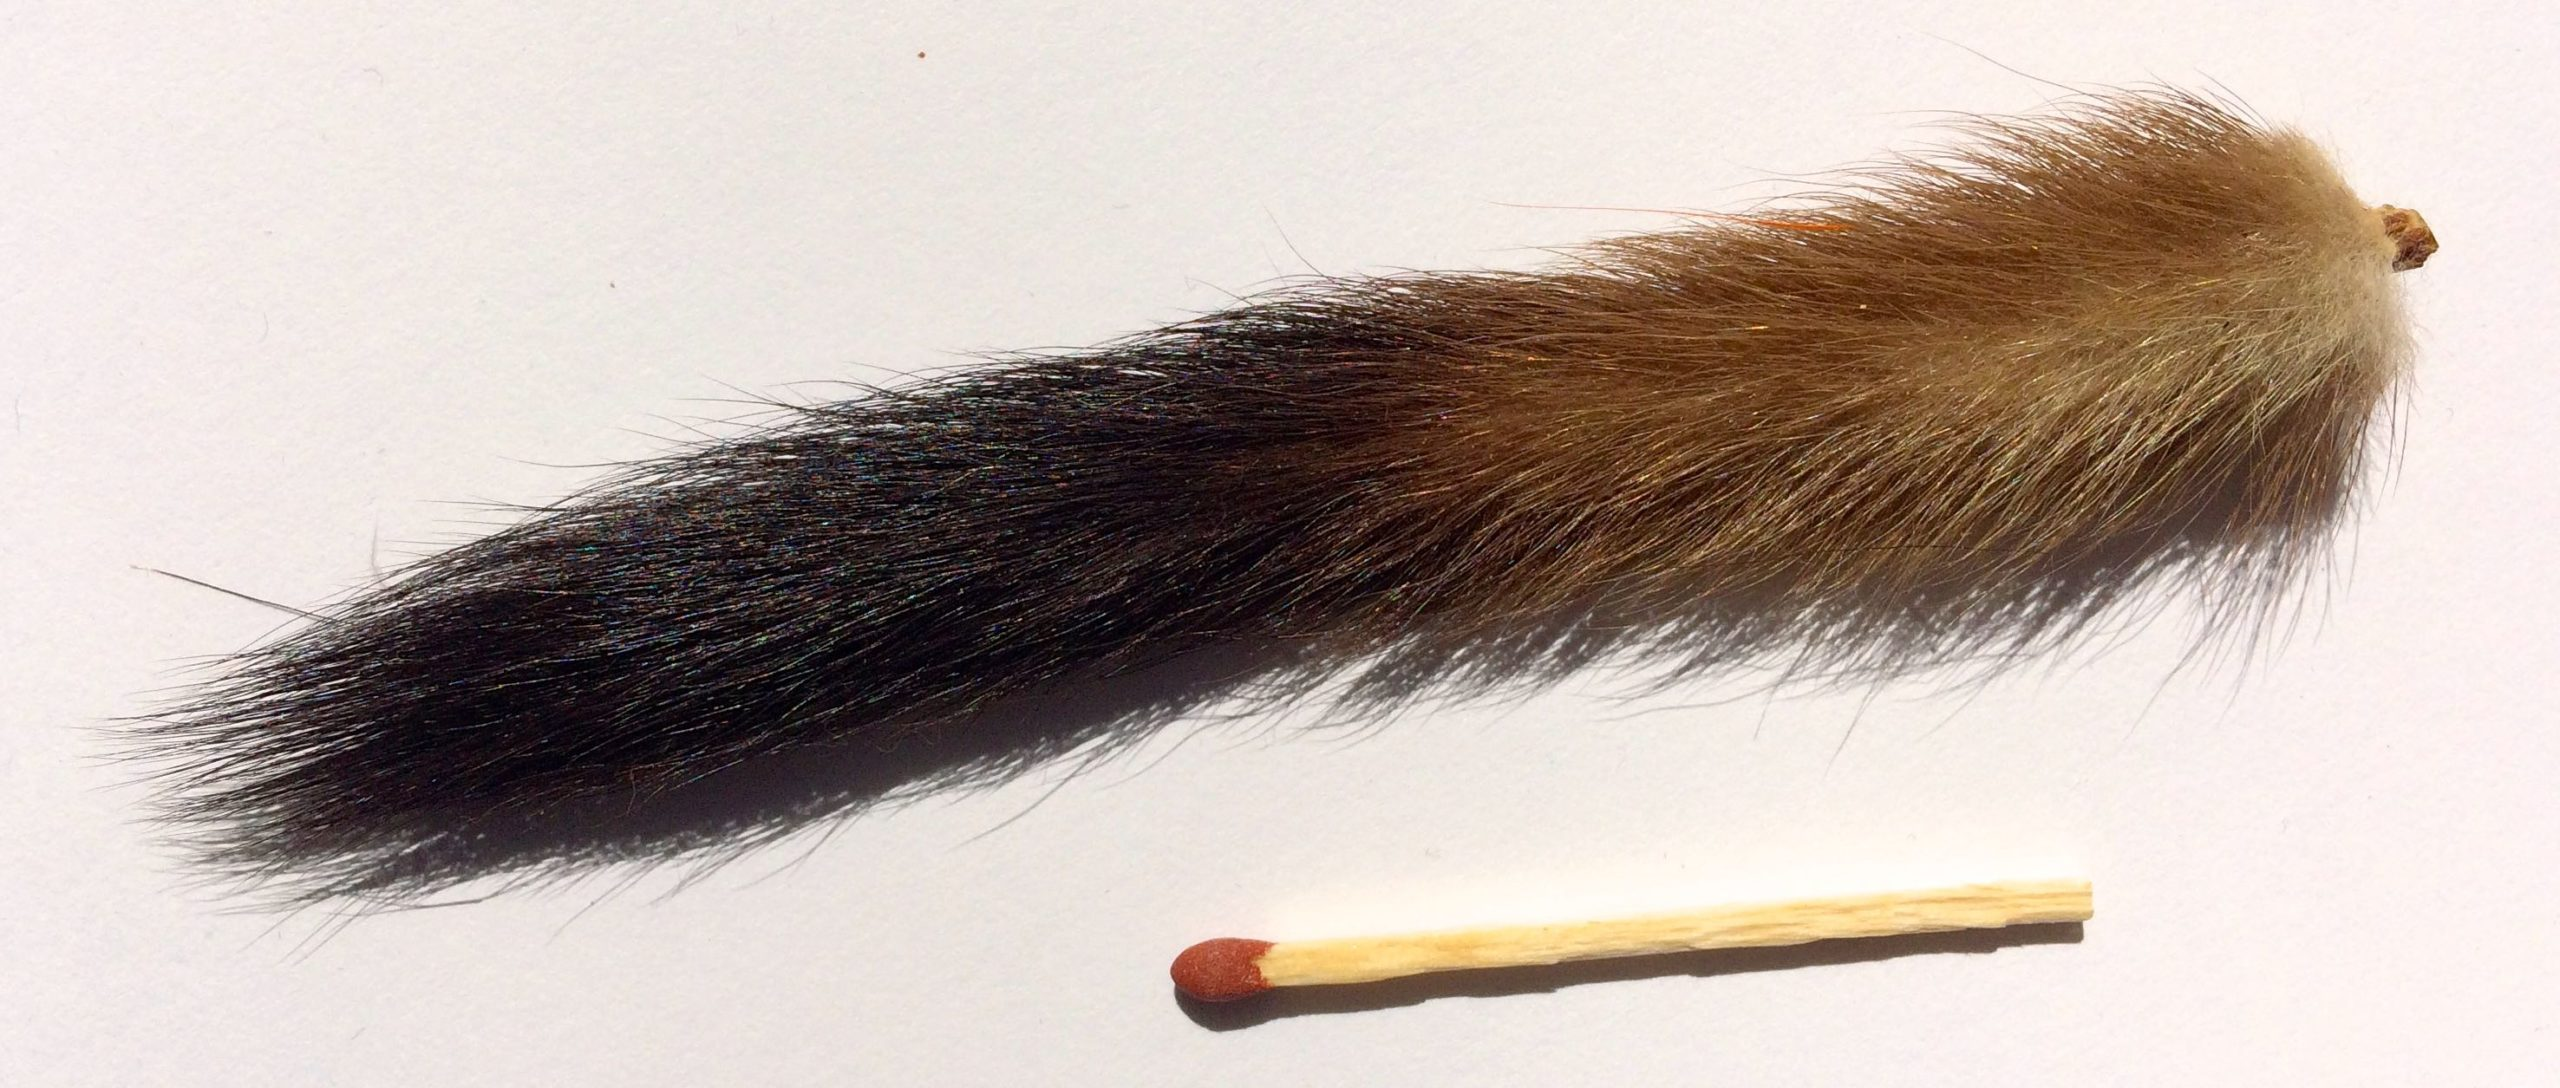 Stoat tail